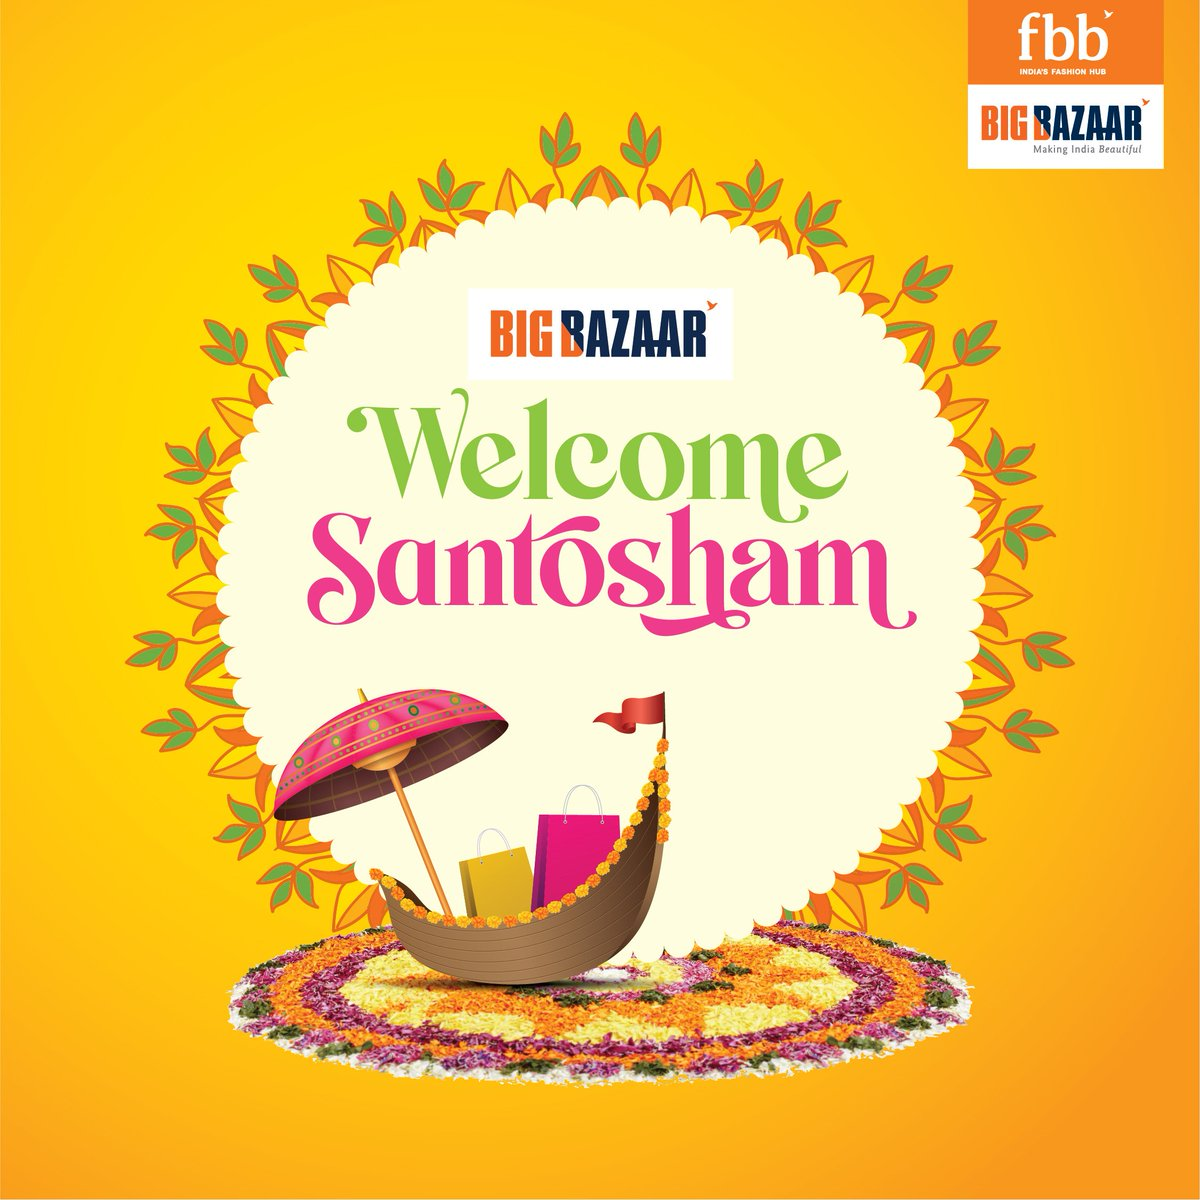 Onam is around the corner and we are here to celebrate it with you! Avail amazing discounts with https://t.co/QGuGR7ZRna and add more joy to the existing celebrations!  Shop now: https://t.co/roWXF1k454 #WelcomeSantosham https://t.co/evYSQkWlPi